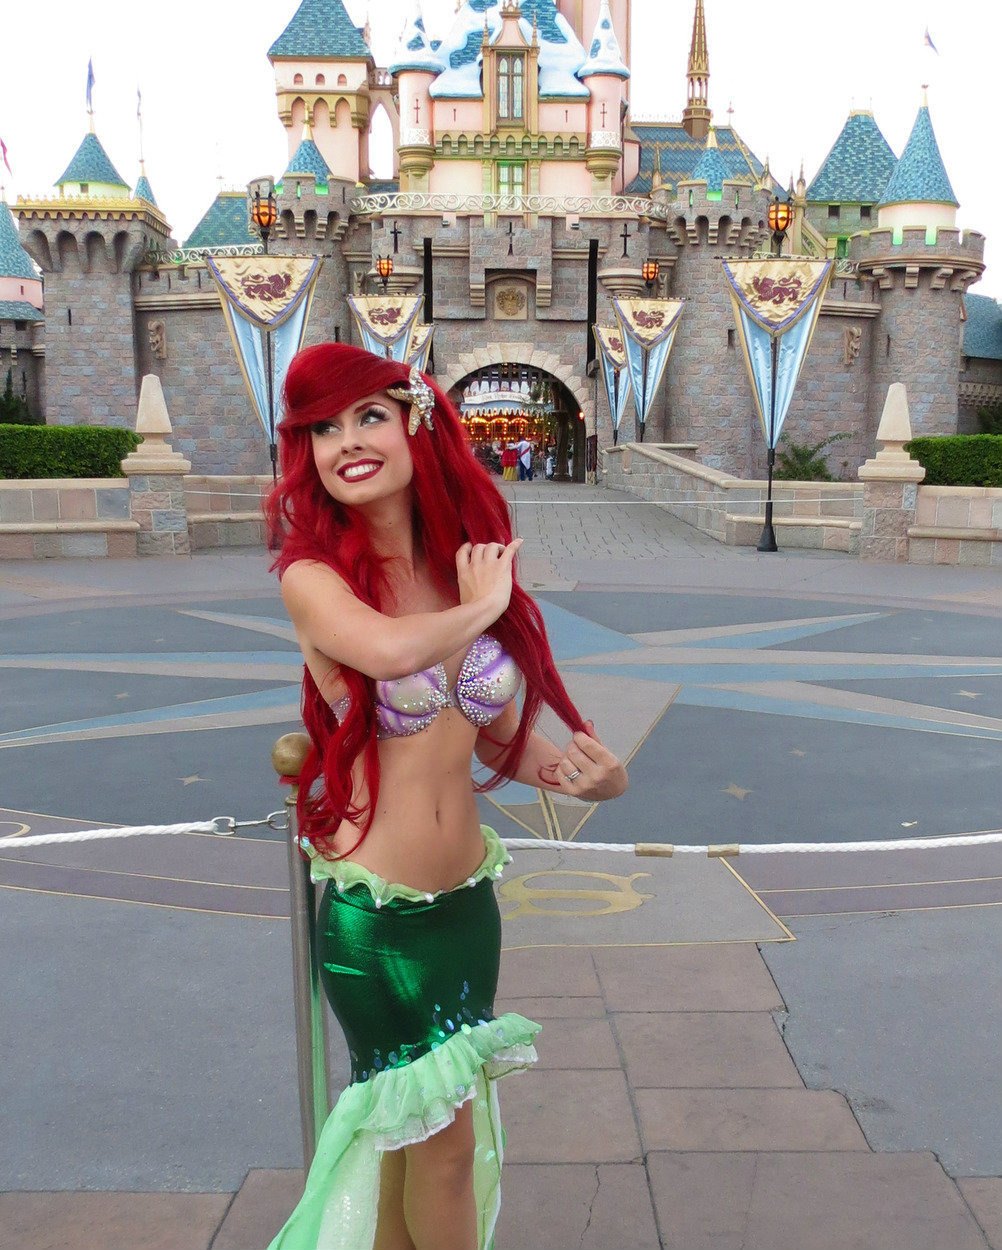 The Little Mermaid by TheRealLittleMermaid